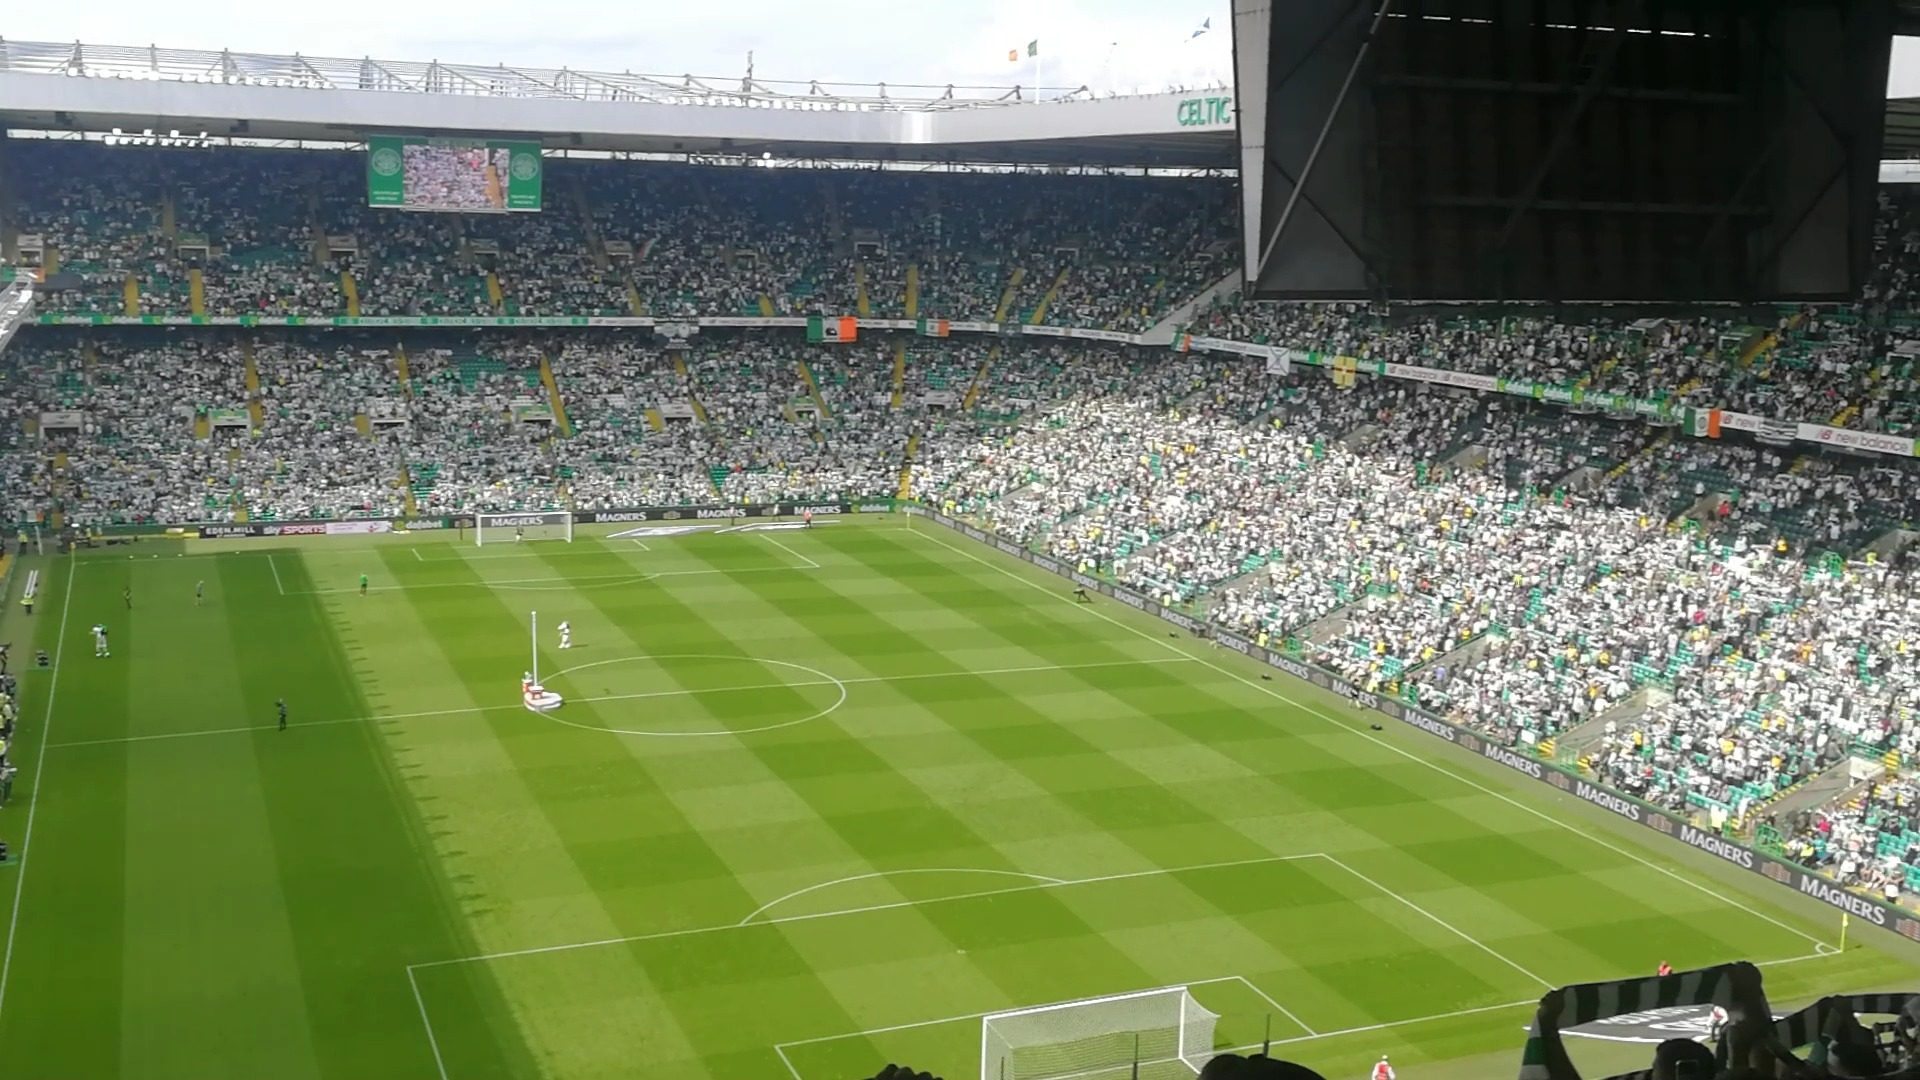 Celtic Park Section 418 Row y Seat 22